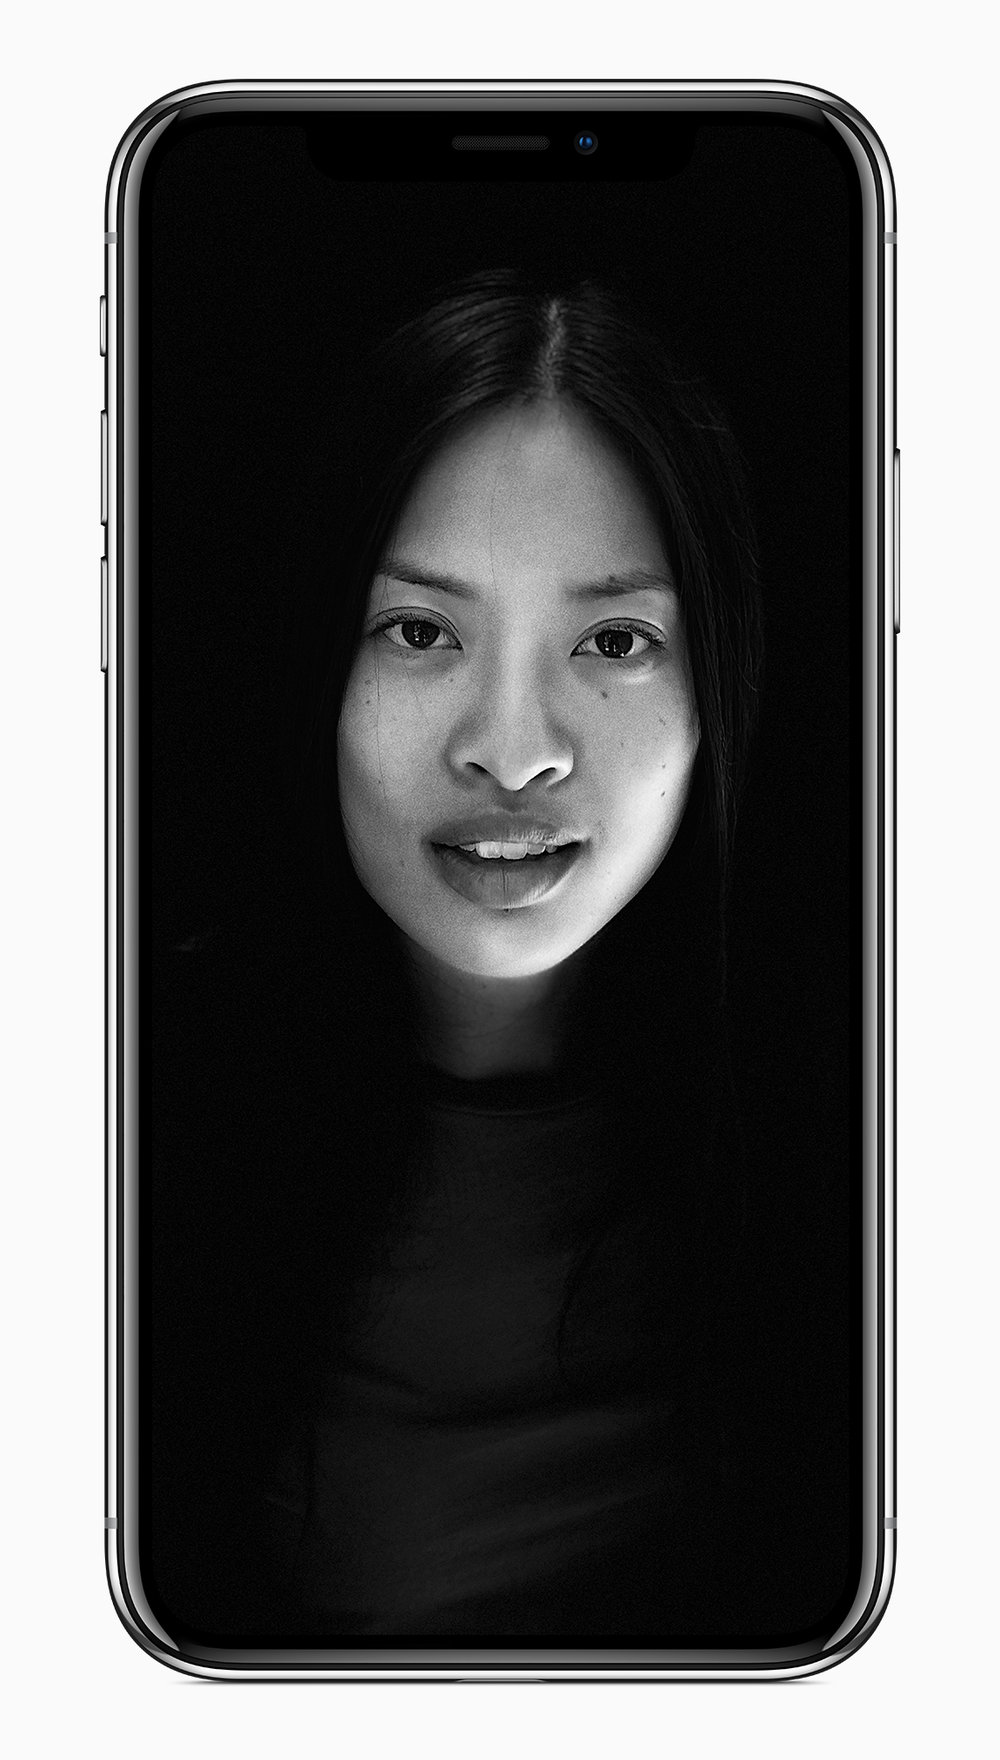 iphonex_camera_front_lighting_five.jpg